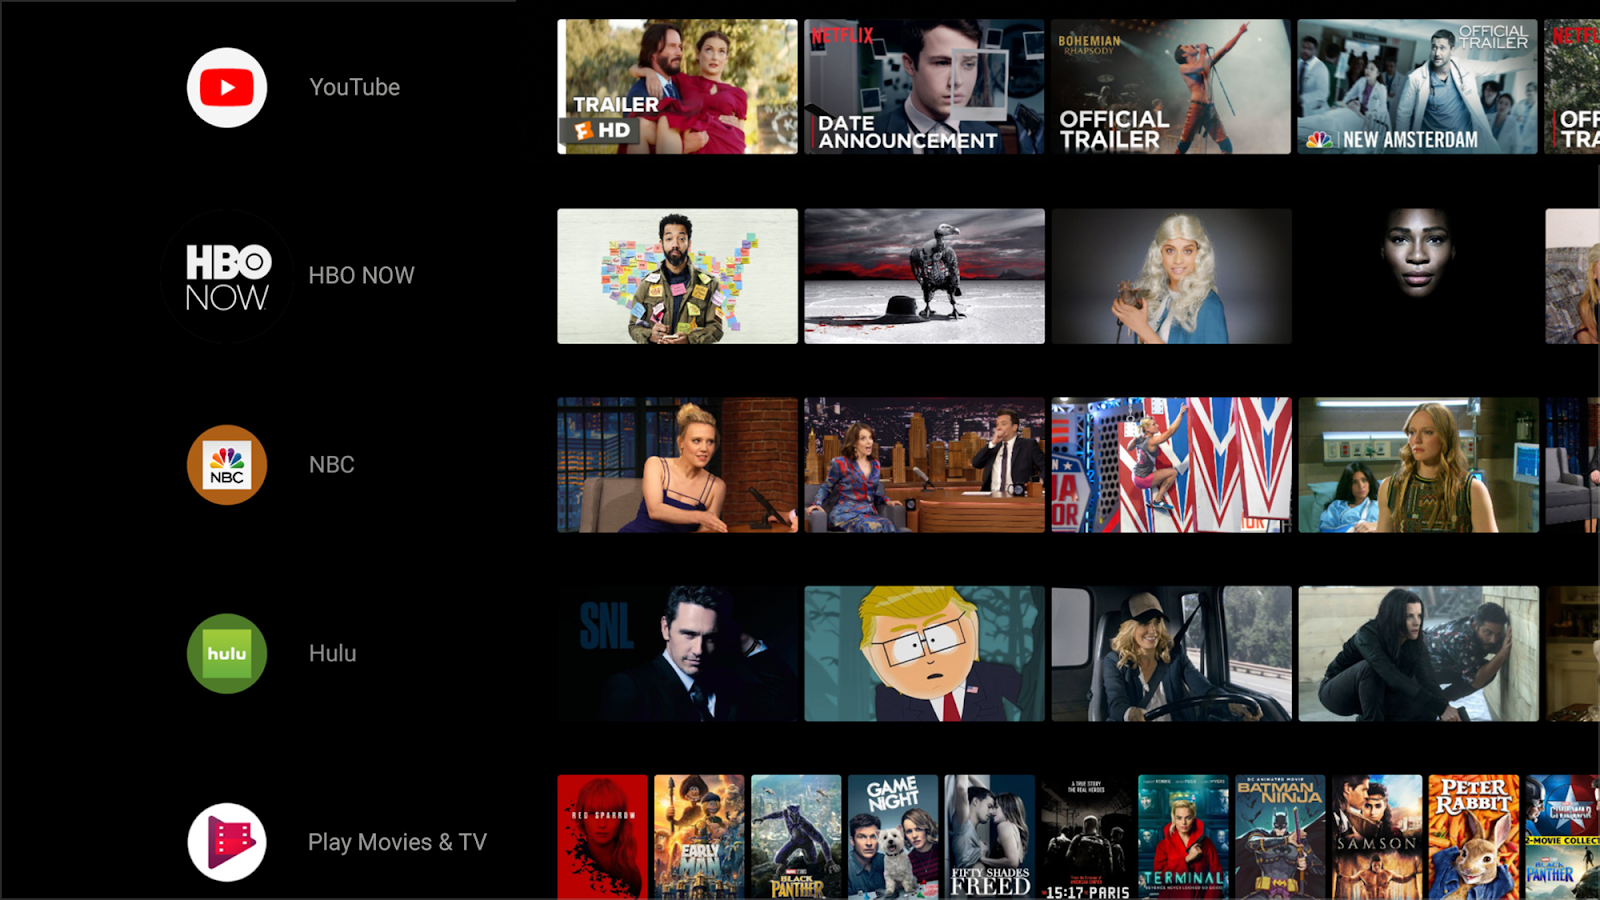 See channels from your favorite apps